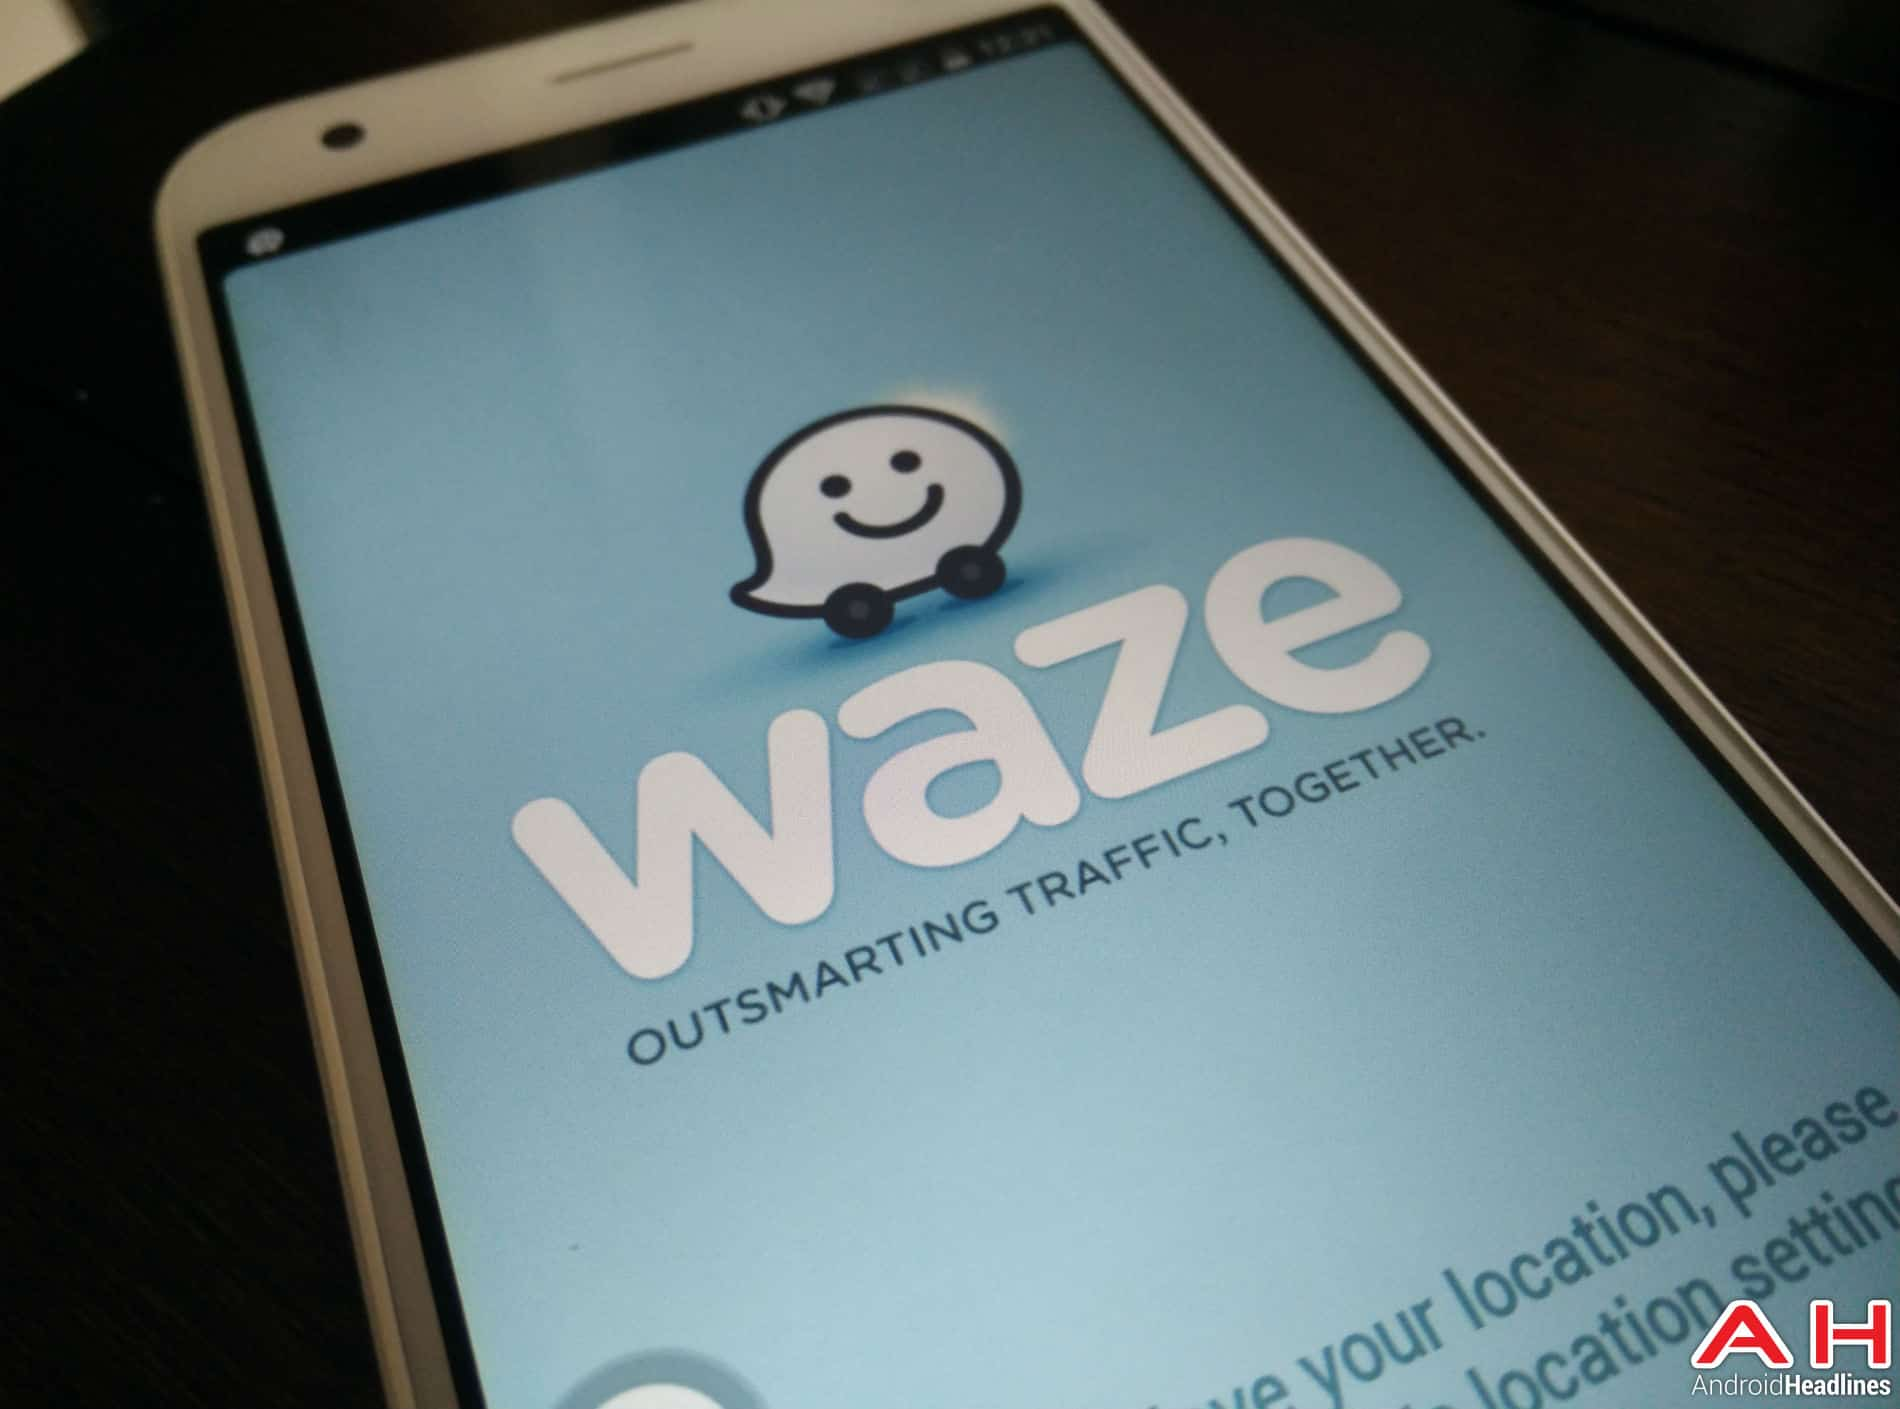 Updated Waze App With New Looks Coming Soon To Android